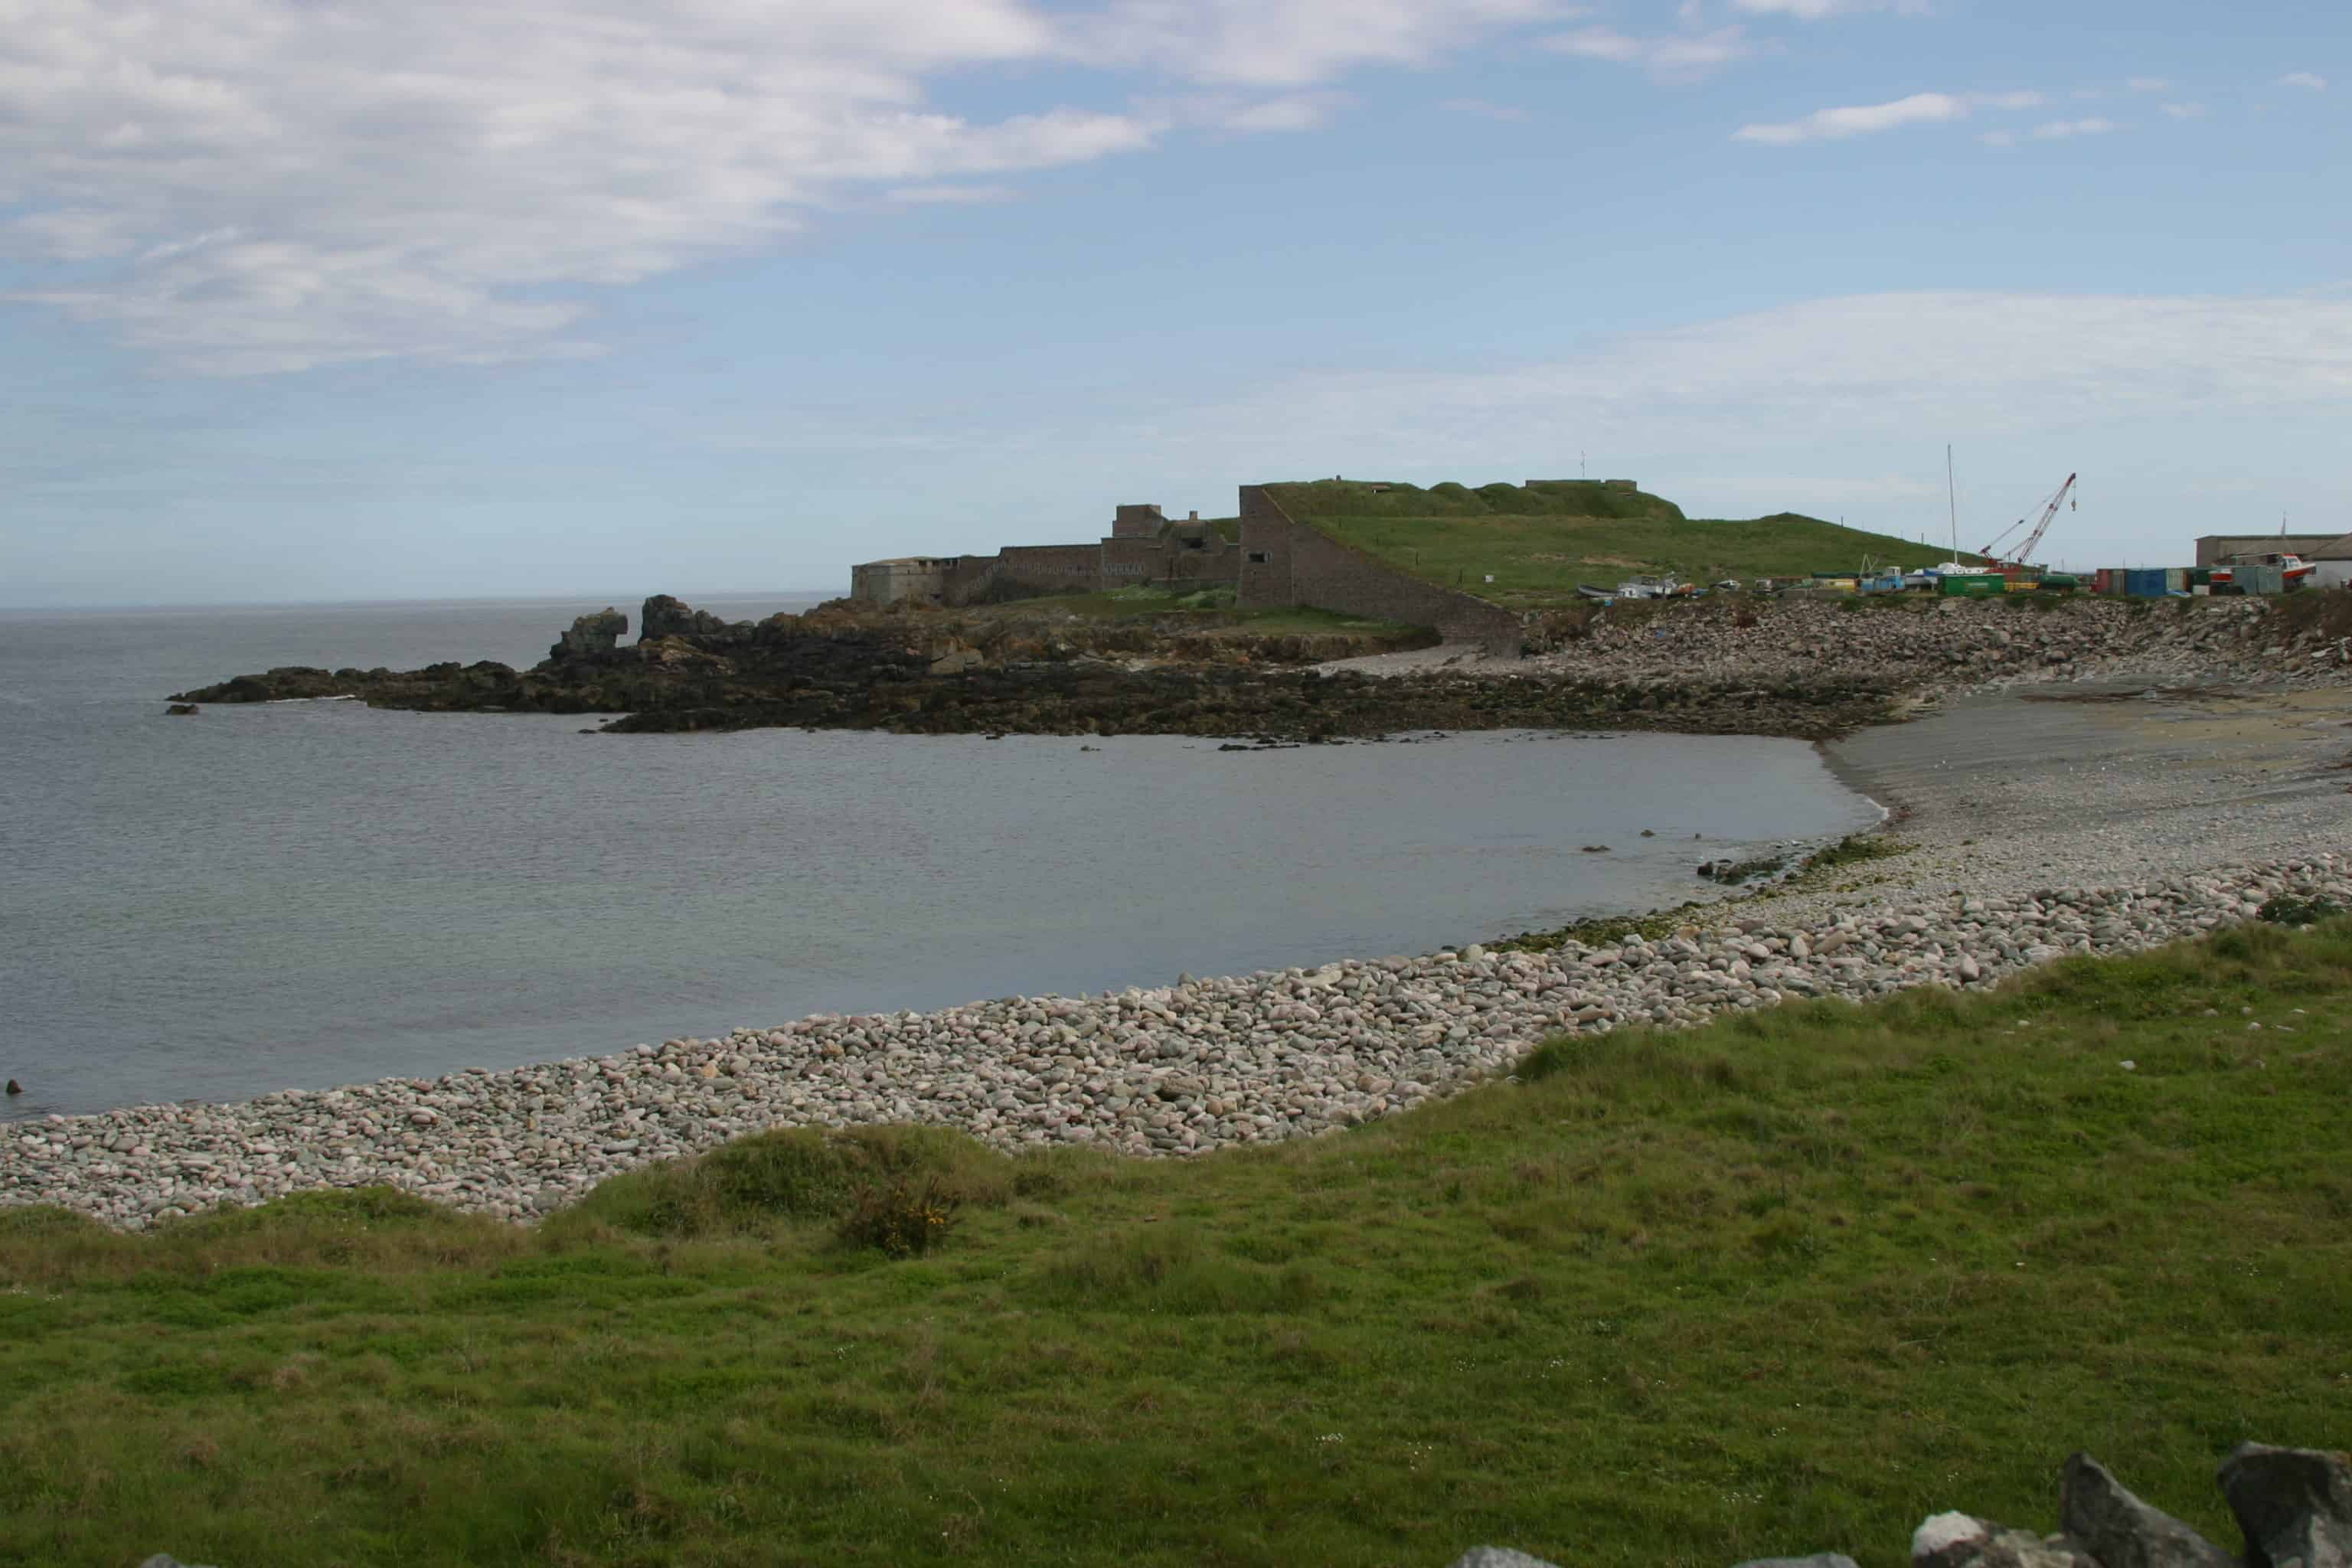 Alderney has been strategically important at least from Roman times to the Second World War, when it was occupied; Copyright: Dr Mike Pienkowski